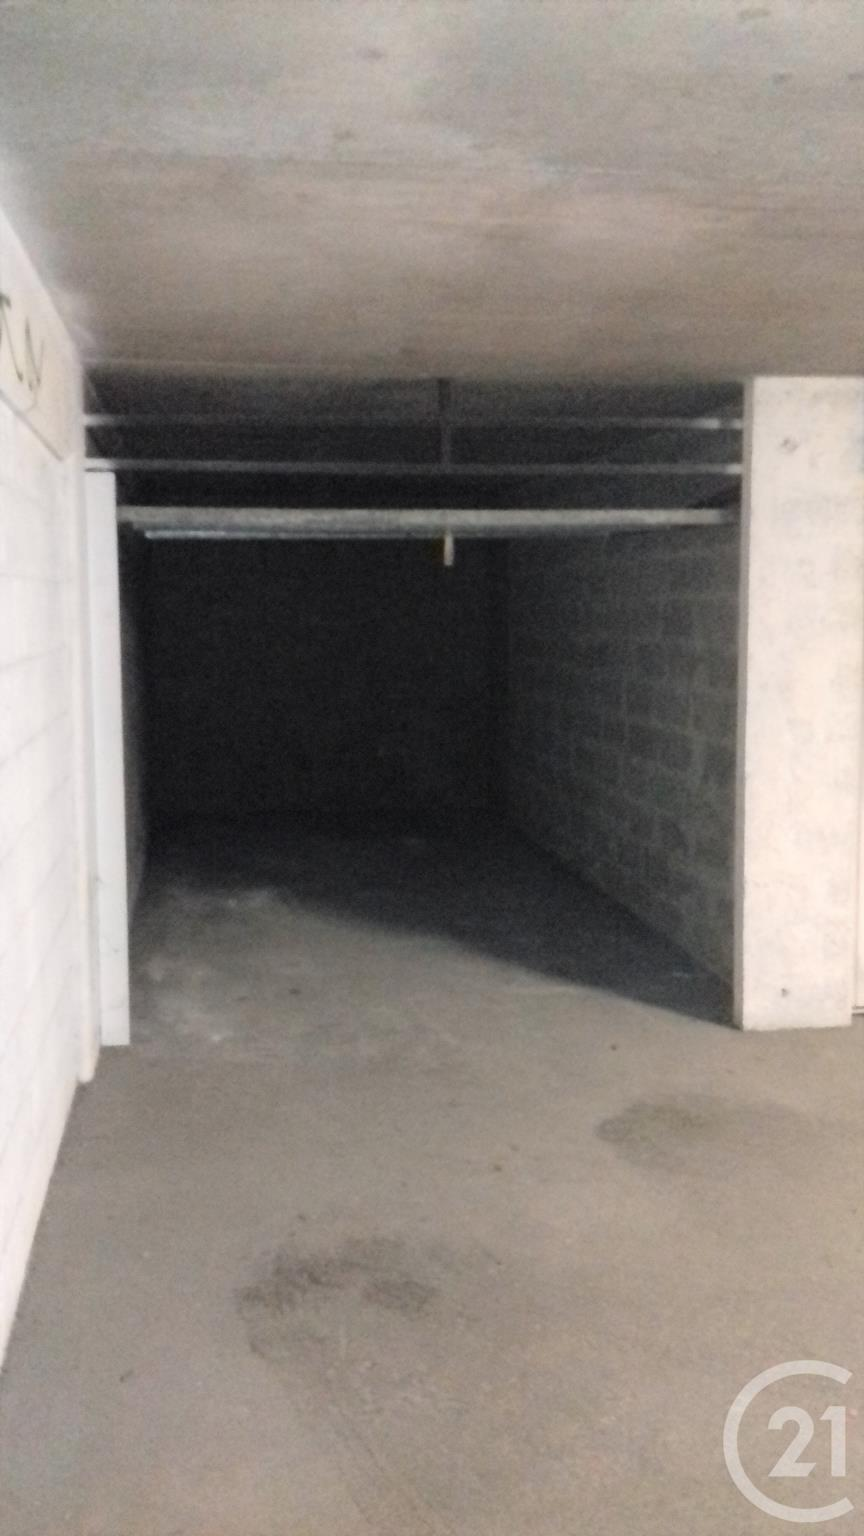 Parking à vendre - 15 m2 - PARIS - 75014 - ILE-DE-FRANCE